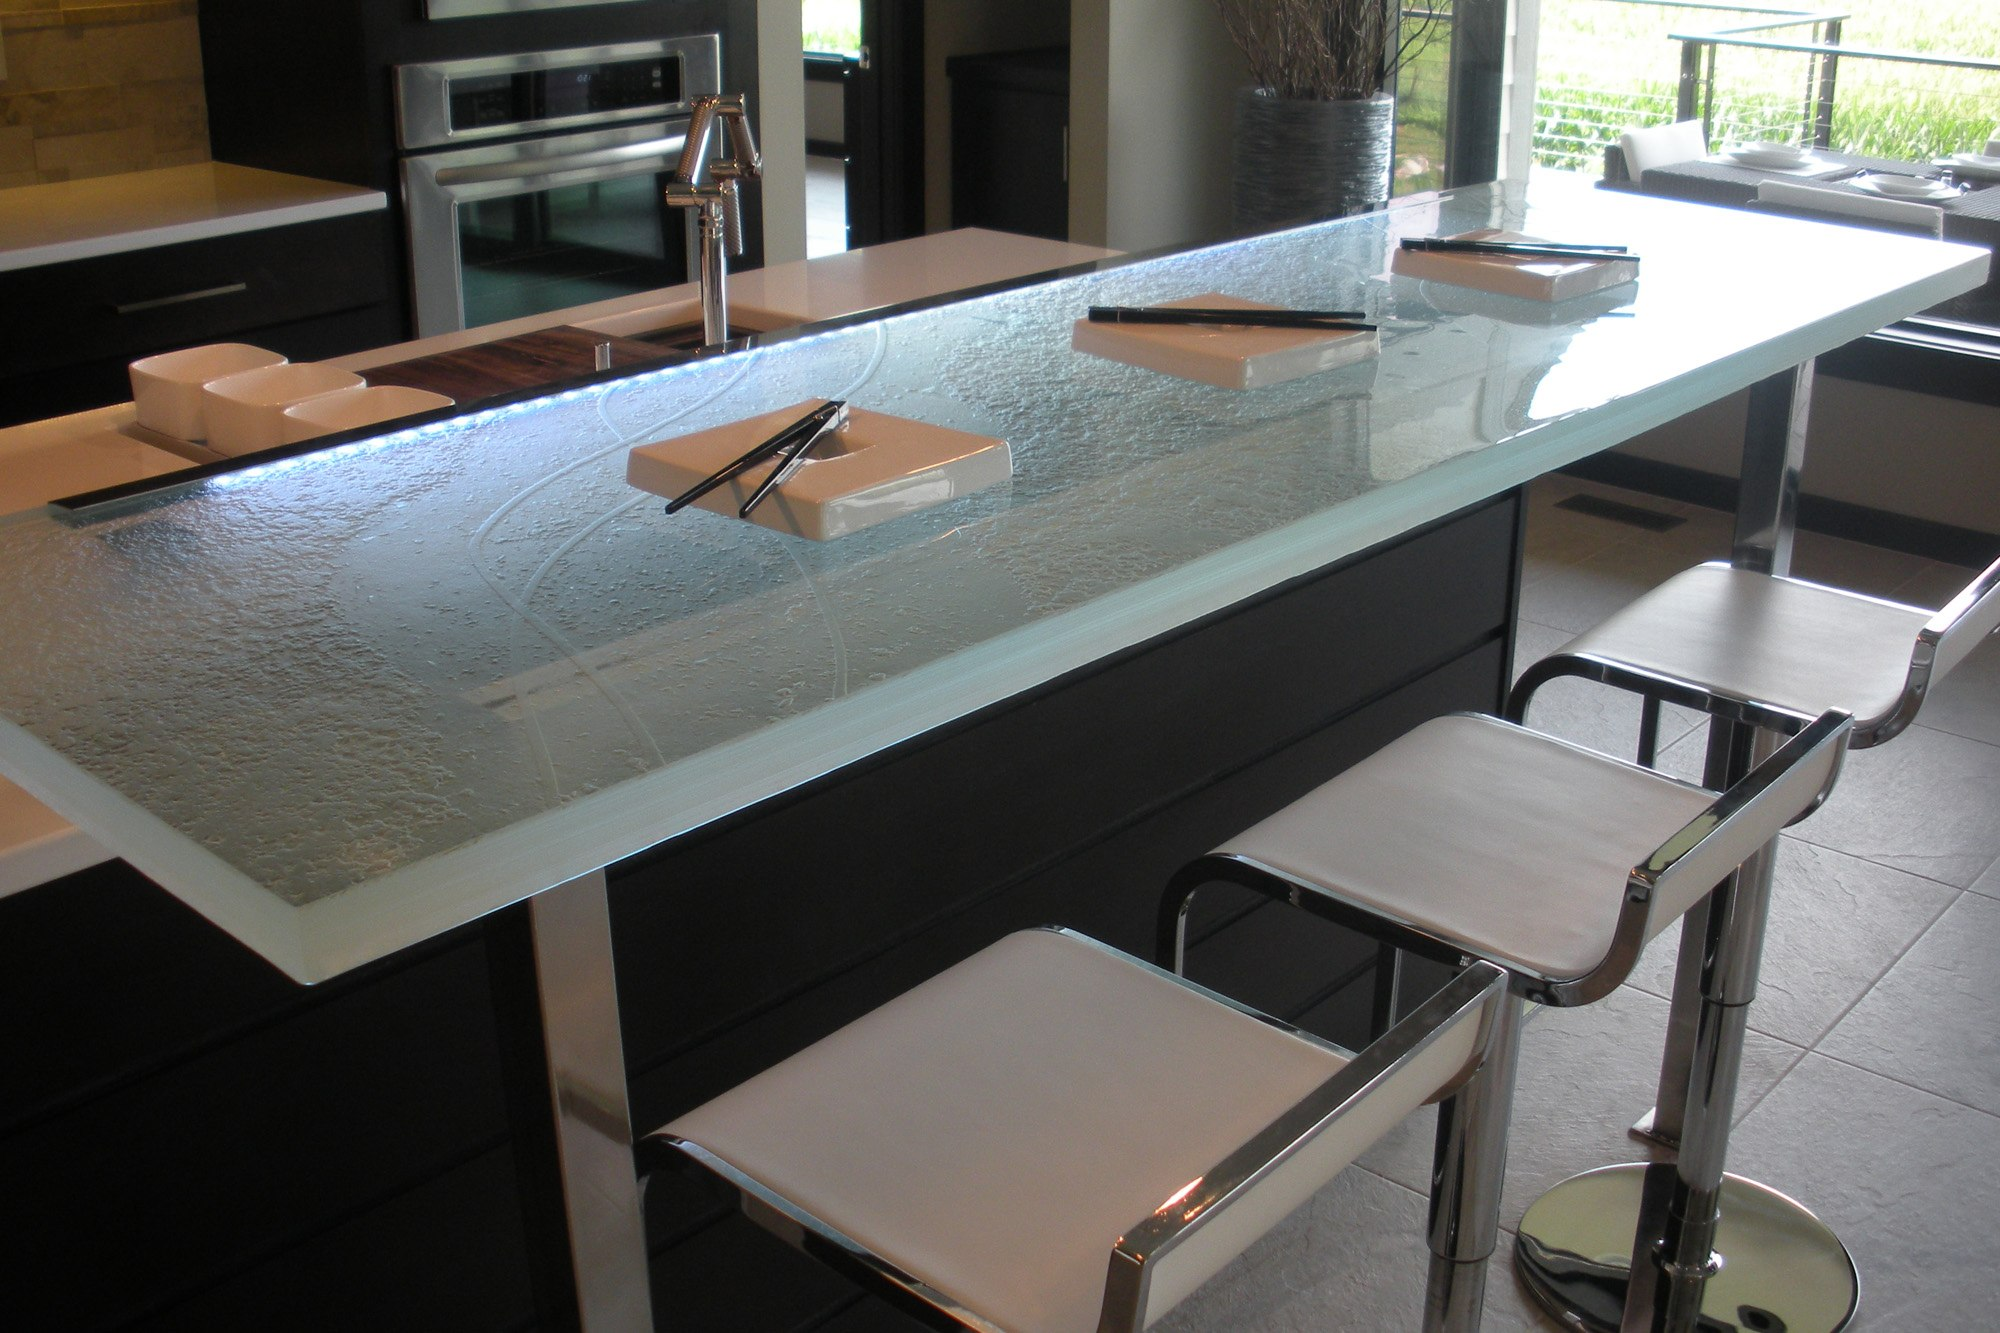 The Ultimate Luxury Touch For Your Kitchen Decor Glass Countertops homesthetics 12